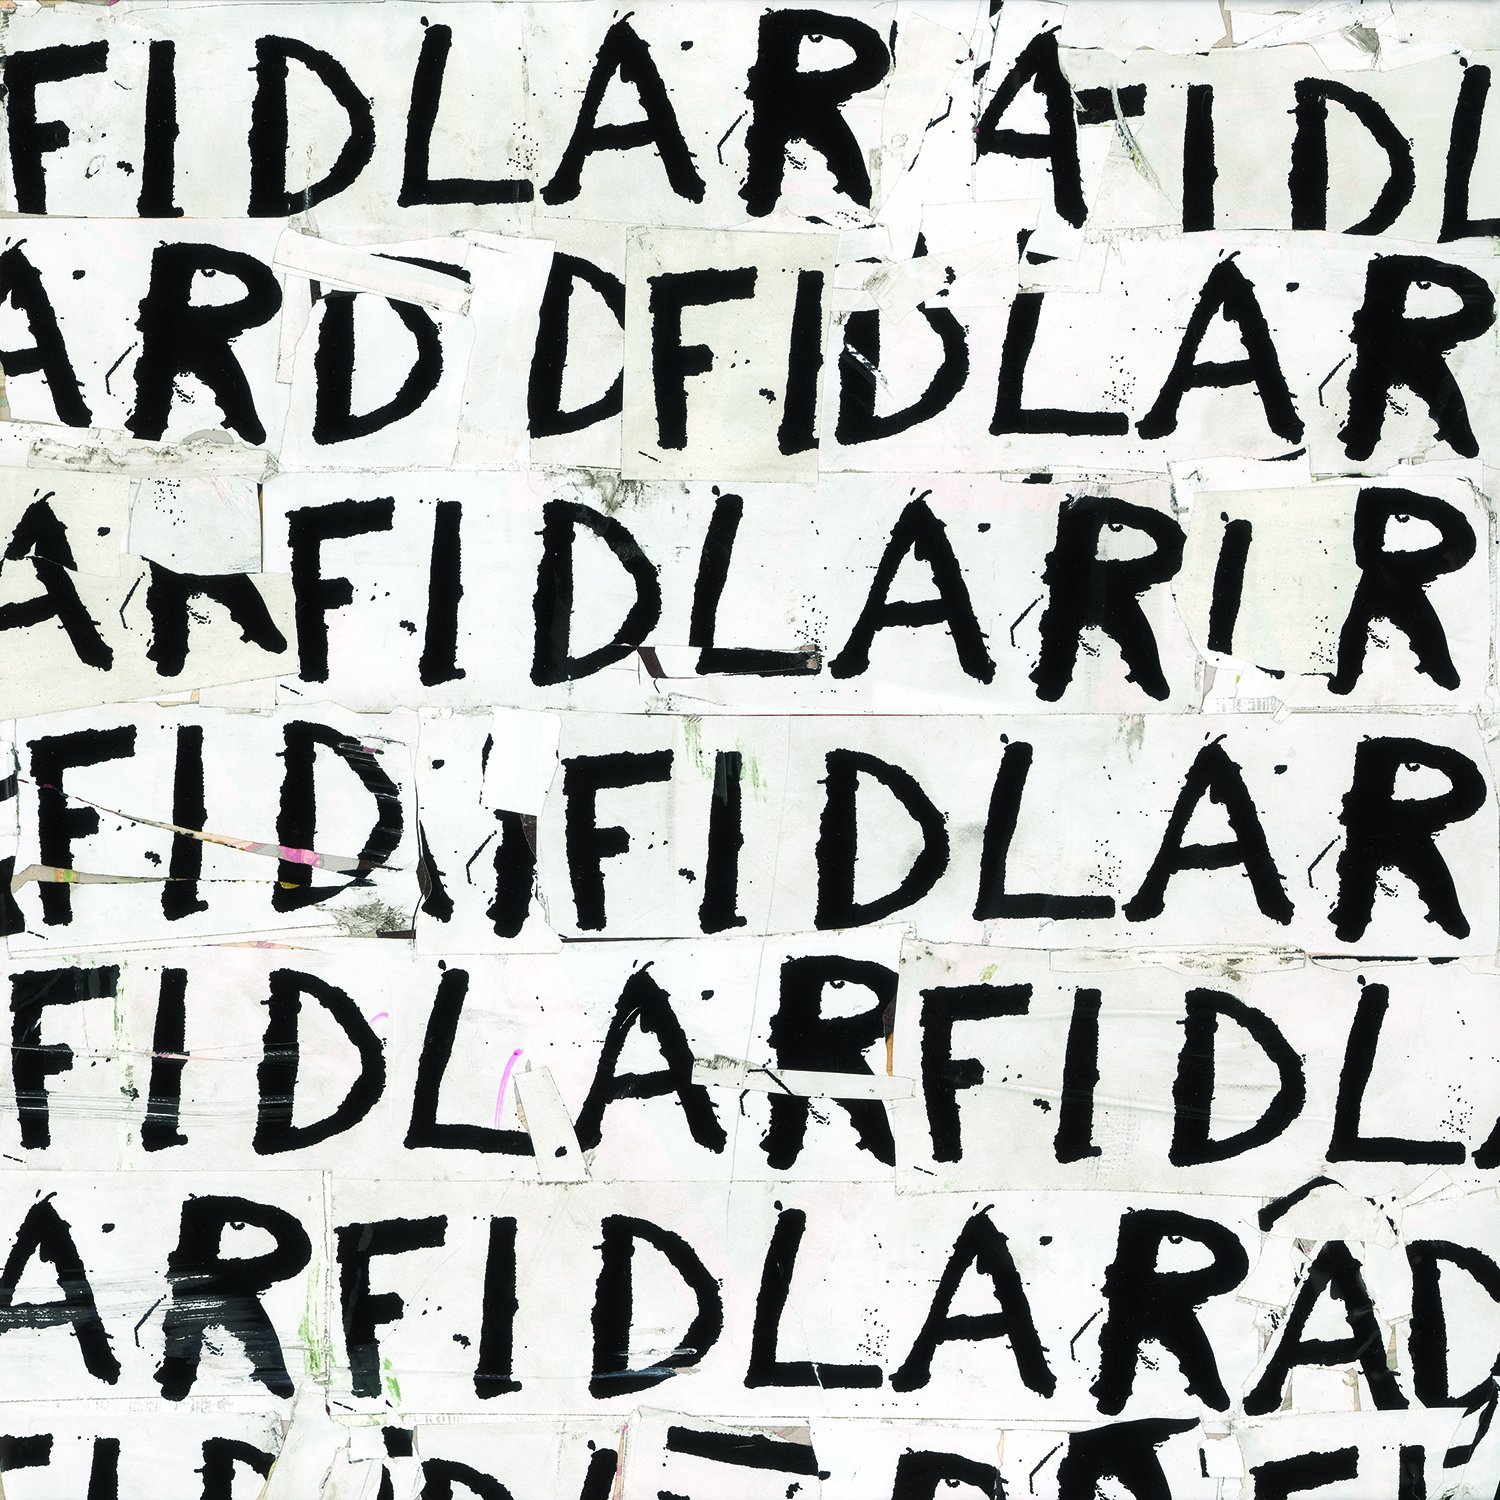 fidlar album cover Top 10 Albums from Mom + Pop Music